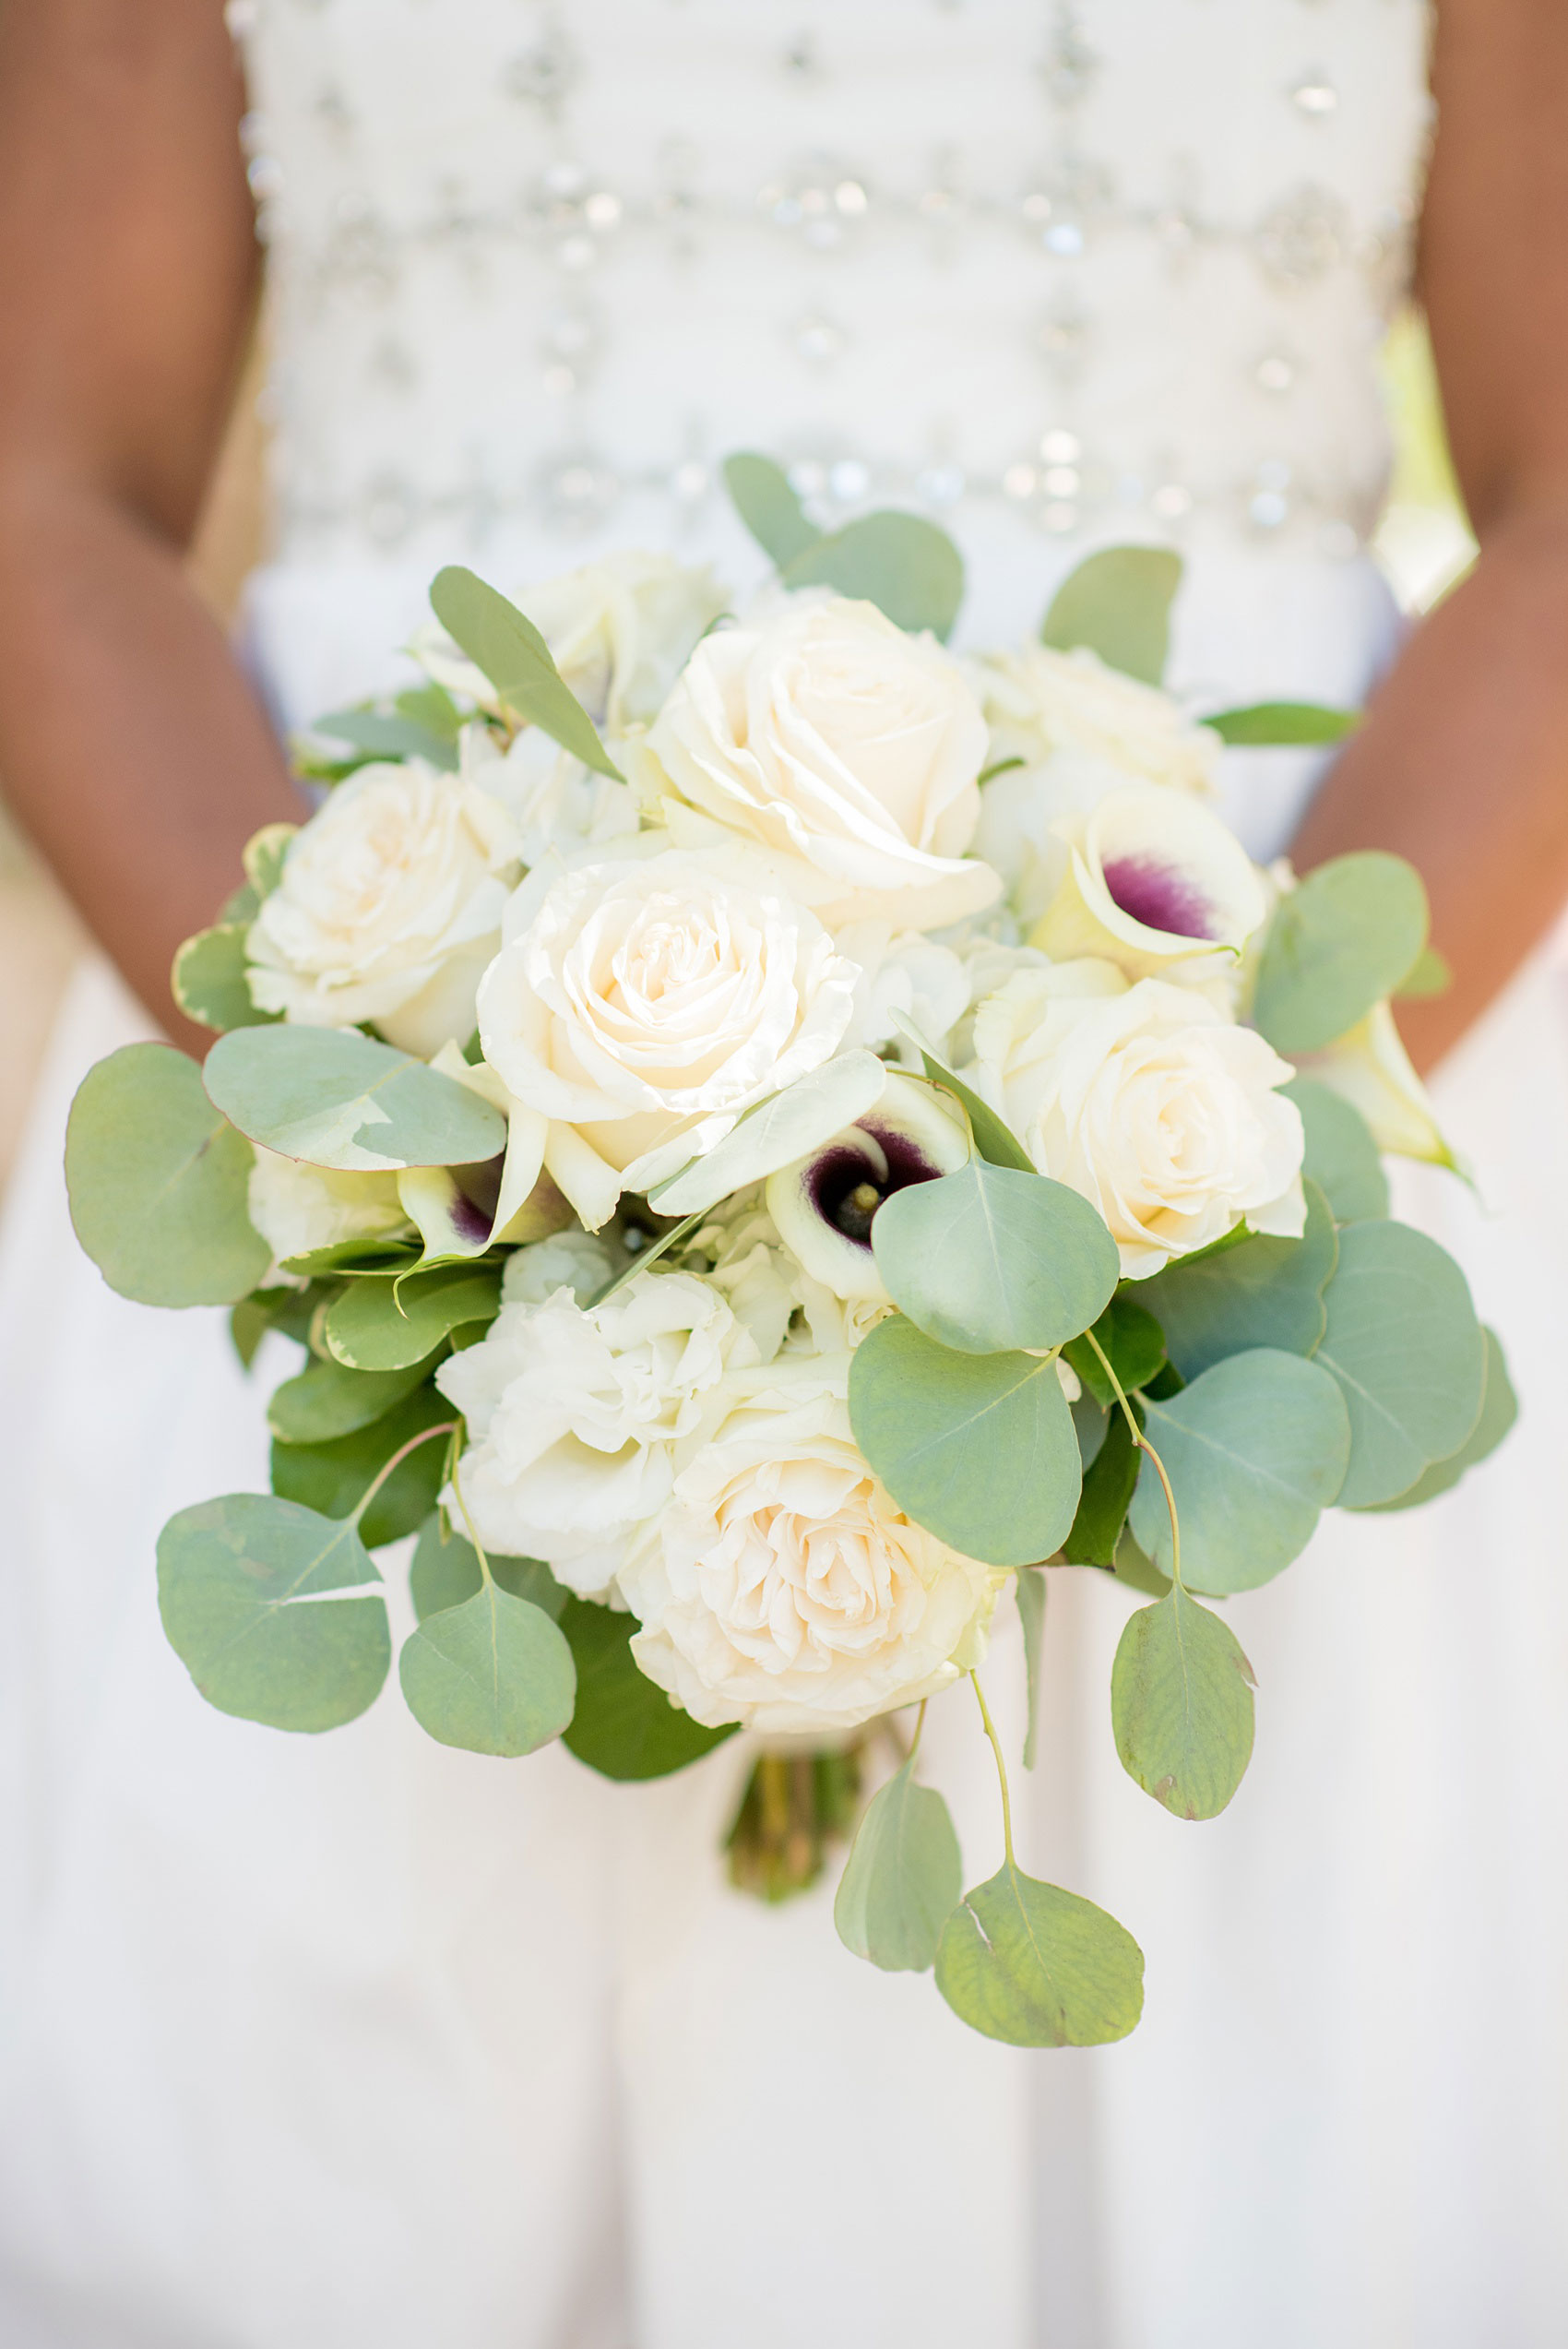 Mikkel Paige Photography pictures of a wedding at Leslie-Alford Mim's House in North Carolina for a Mad Dash Weddings event. Photo of the bride's white rose, Picasso Calla Lily and silver dollar eucalyptus greenery.